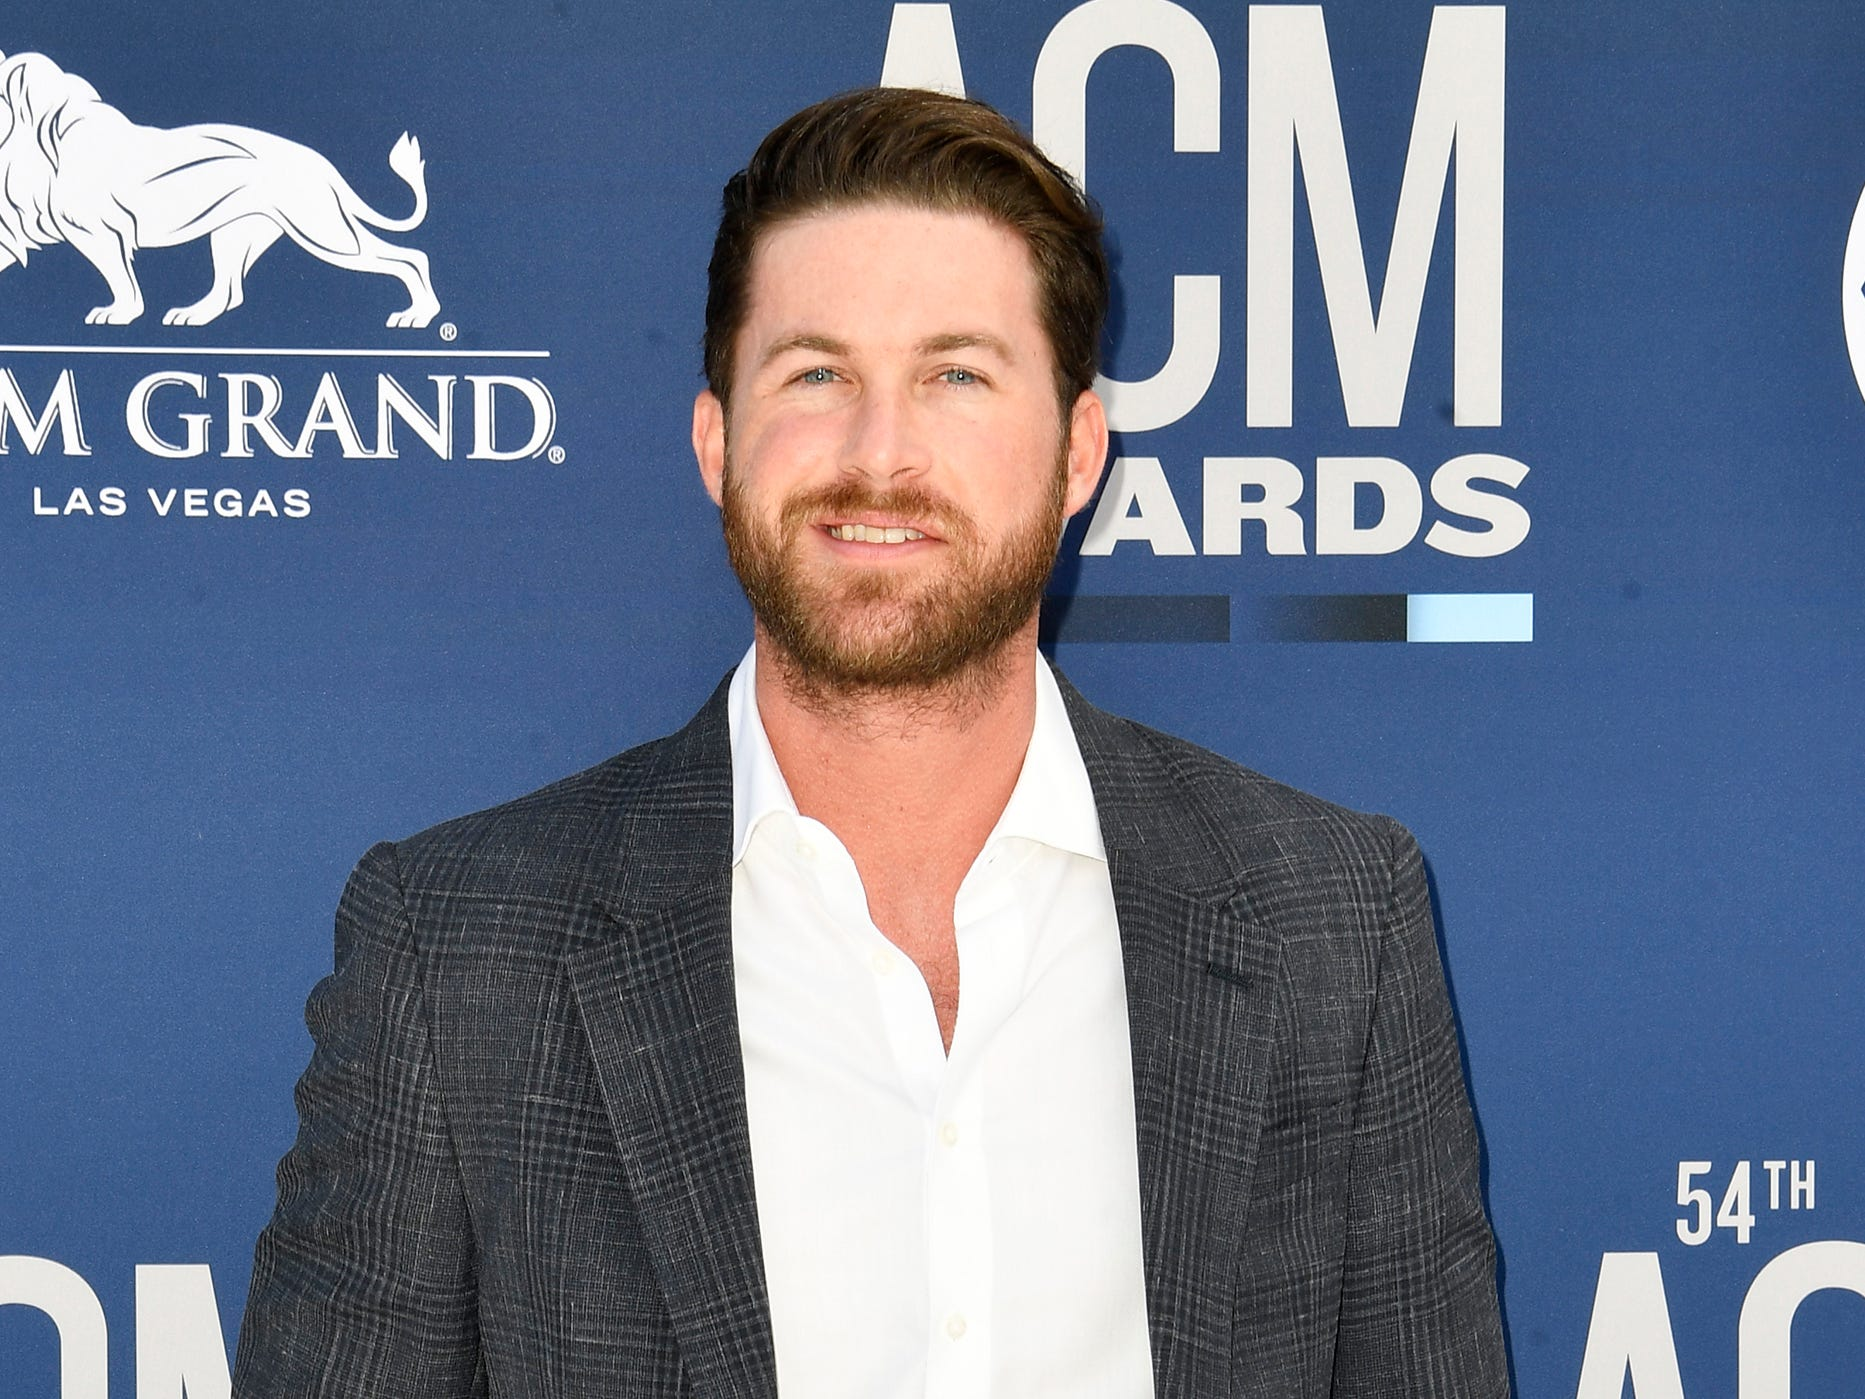 Riley Green walks the red carpet at the 54TH Academy of Country Music Awards Sunday, April 7, 2019, in Las Vegas, Nev.